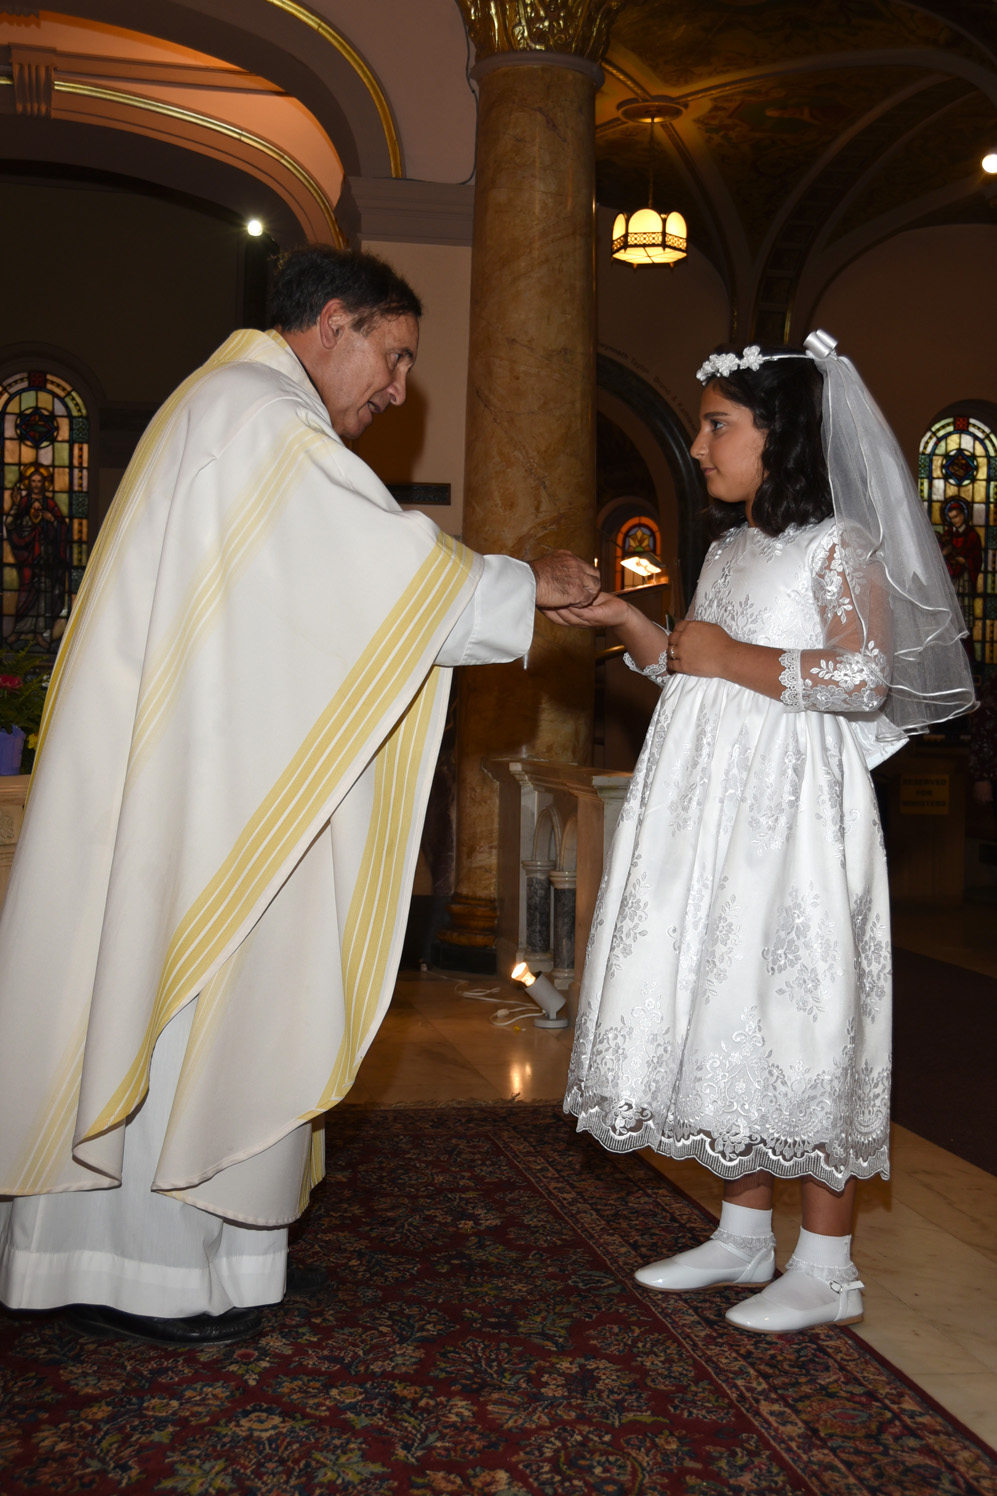 FIRST-COMMUNION-MAY-2-2021-1001001264